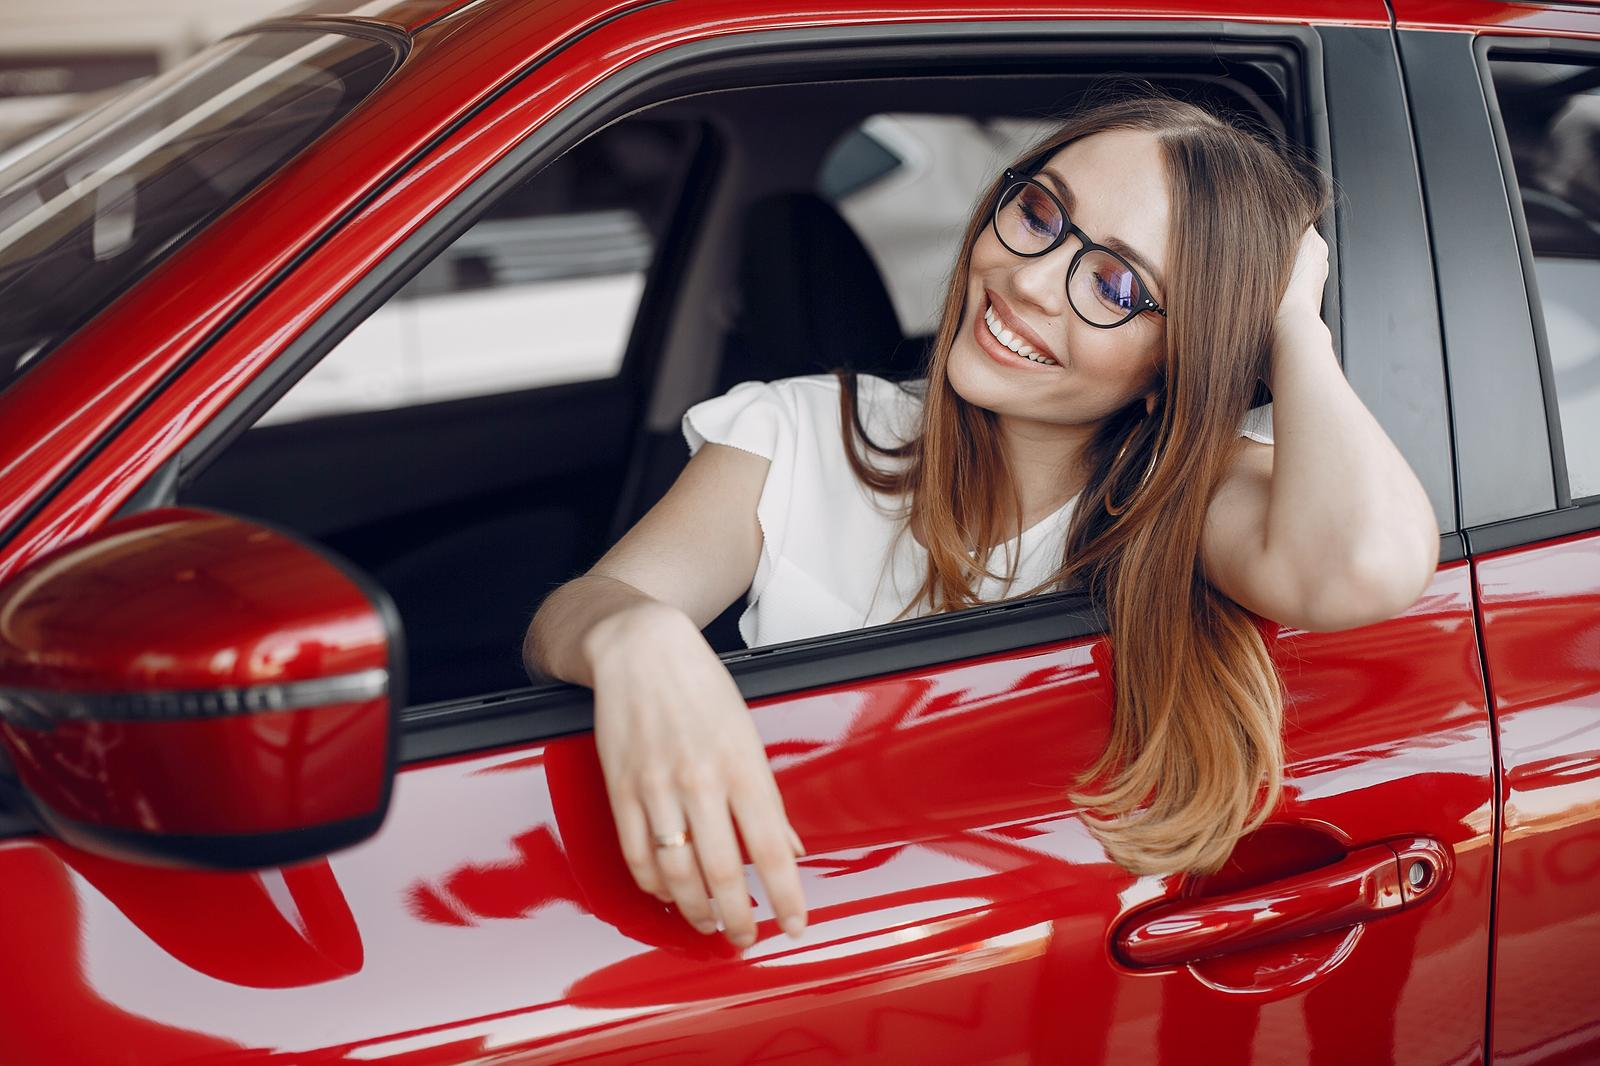 Sale of cars and light motor vehicles in Estonia